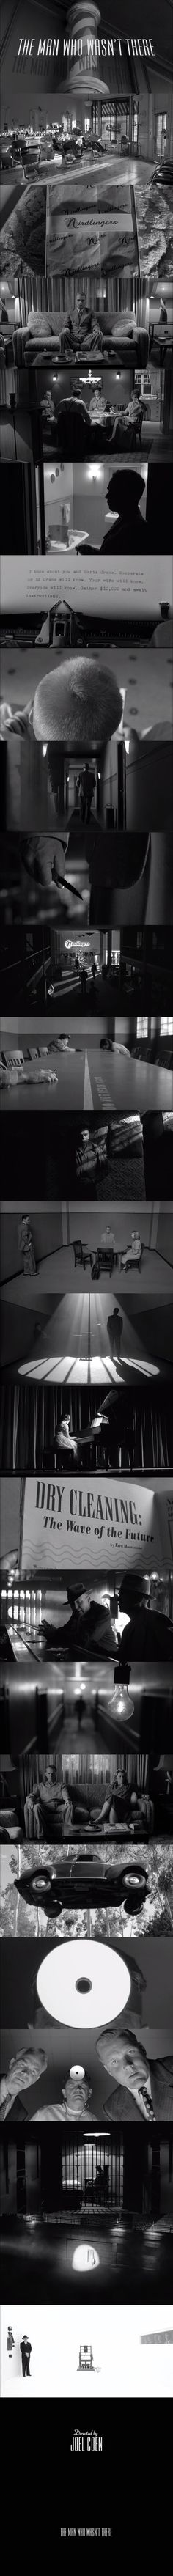 The Man Who Wasn't There (2001) Produced and Directed by Coen brothers and Cinematography by Roger Deakins.